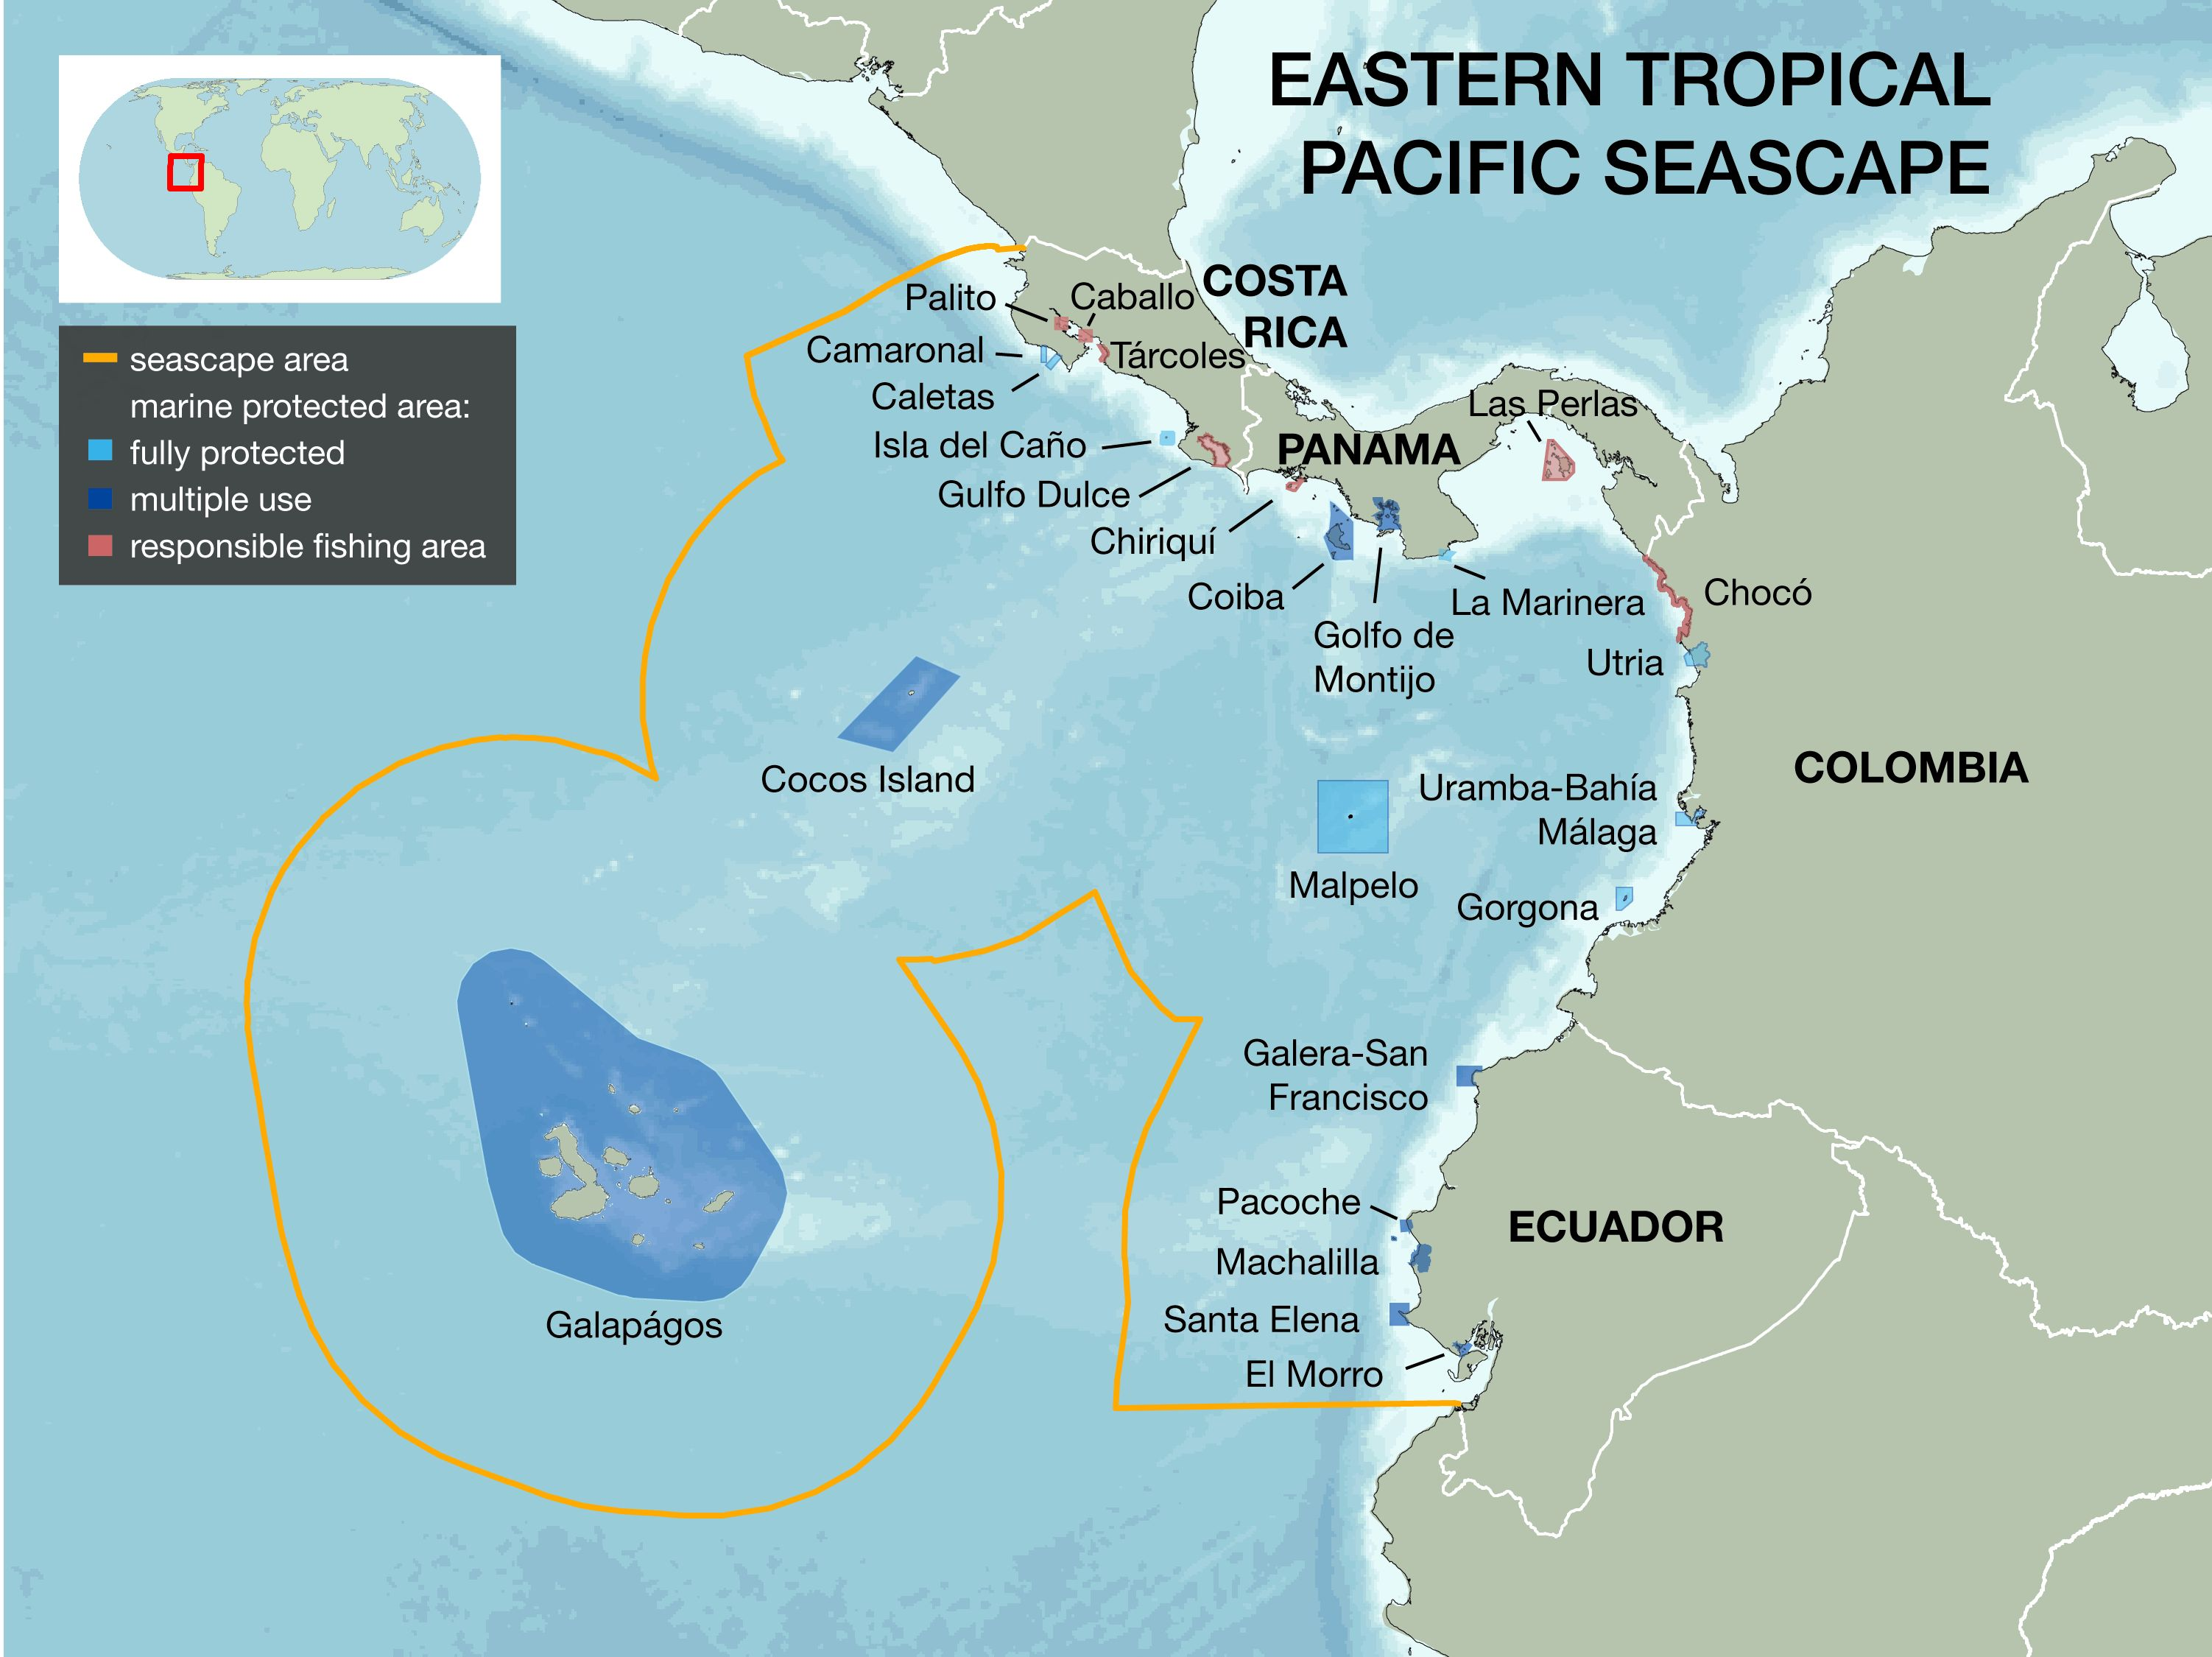 Mpatlas eastern tropical pacific seascape multi country gumiabroncs Image collections